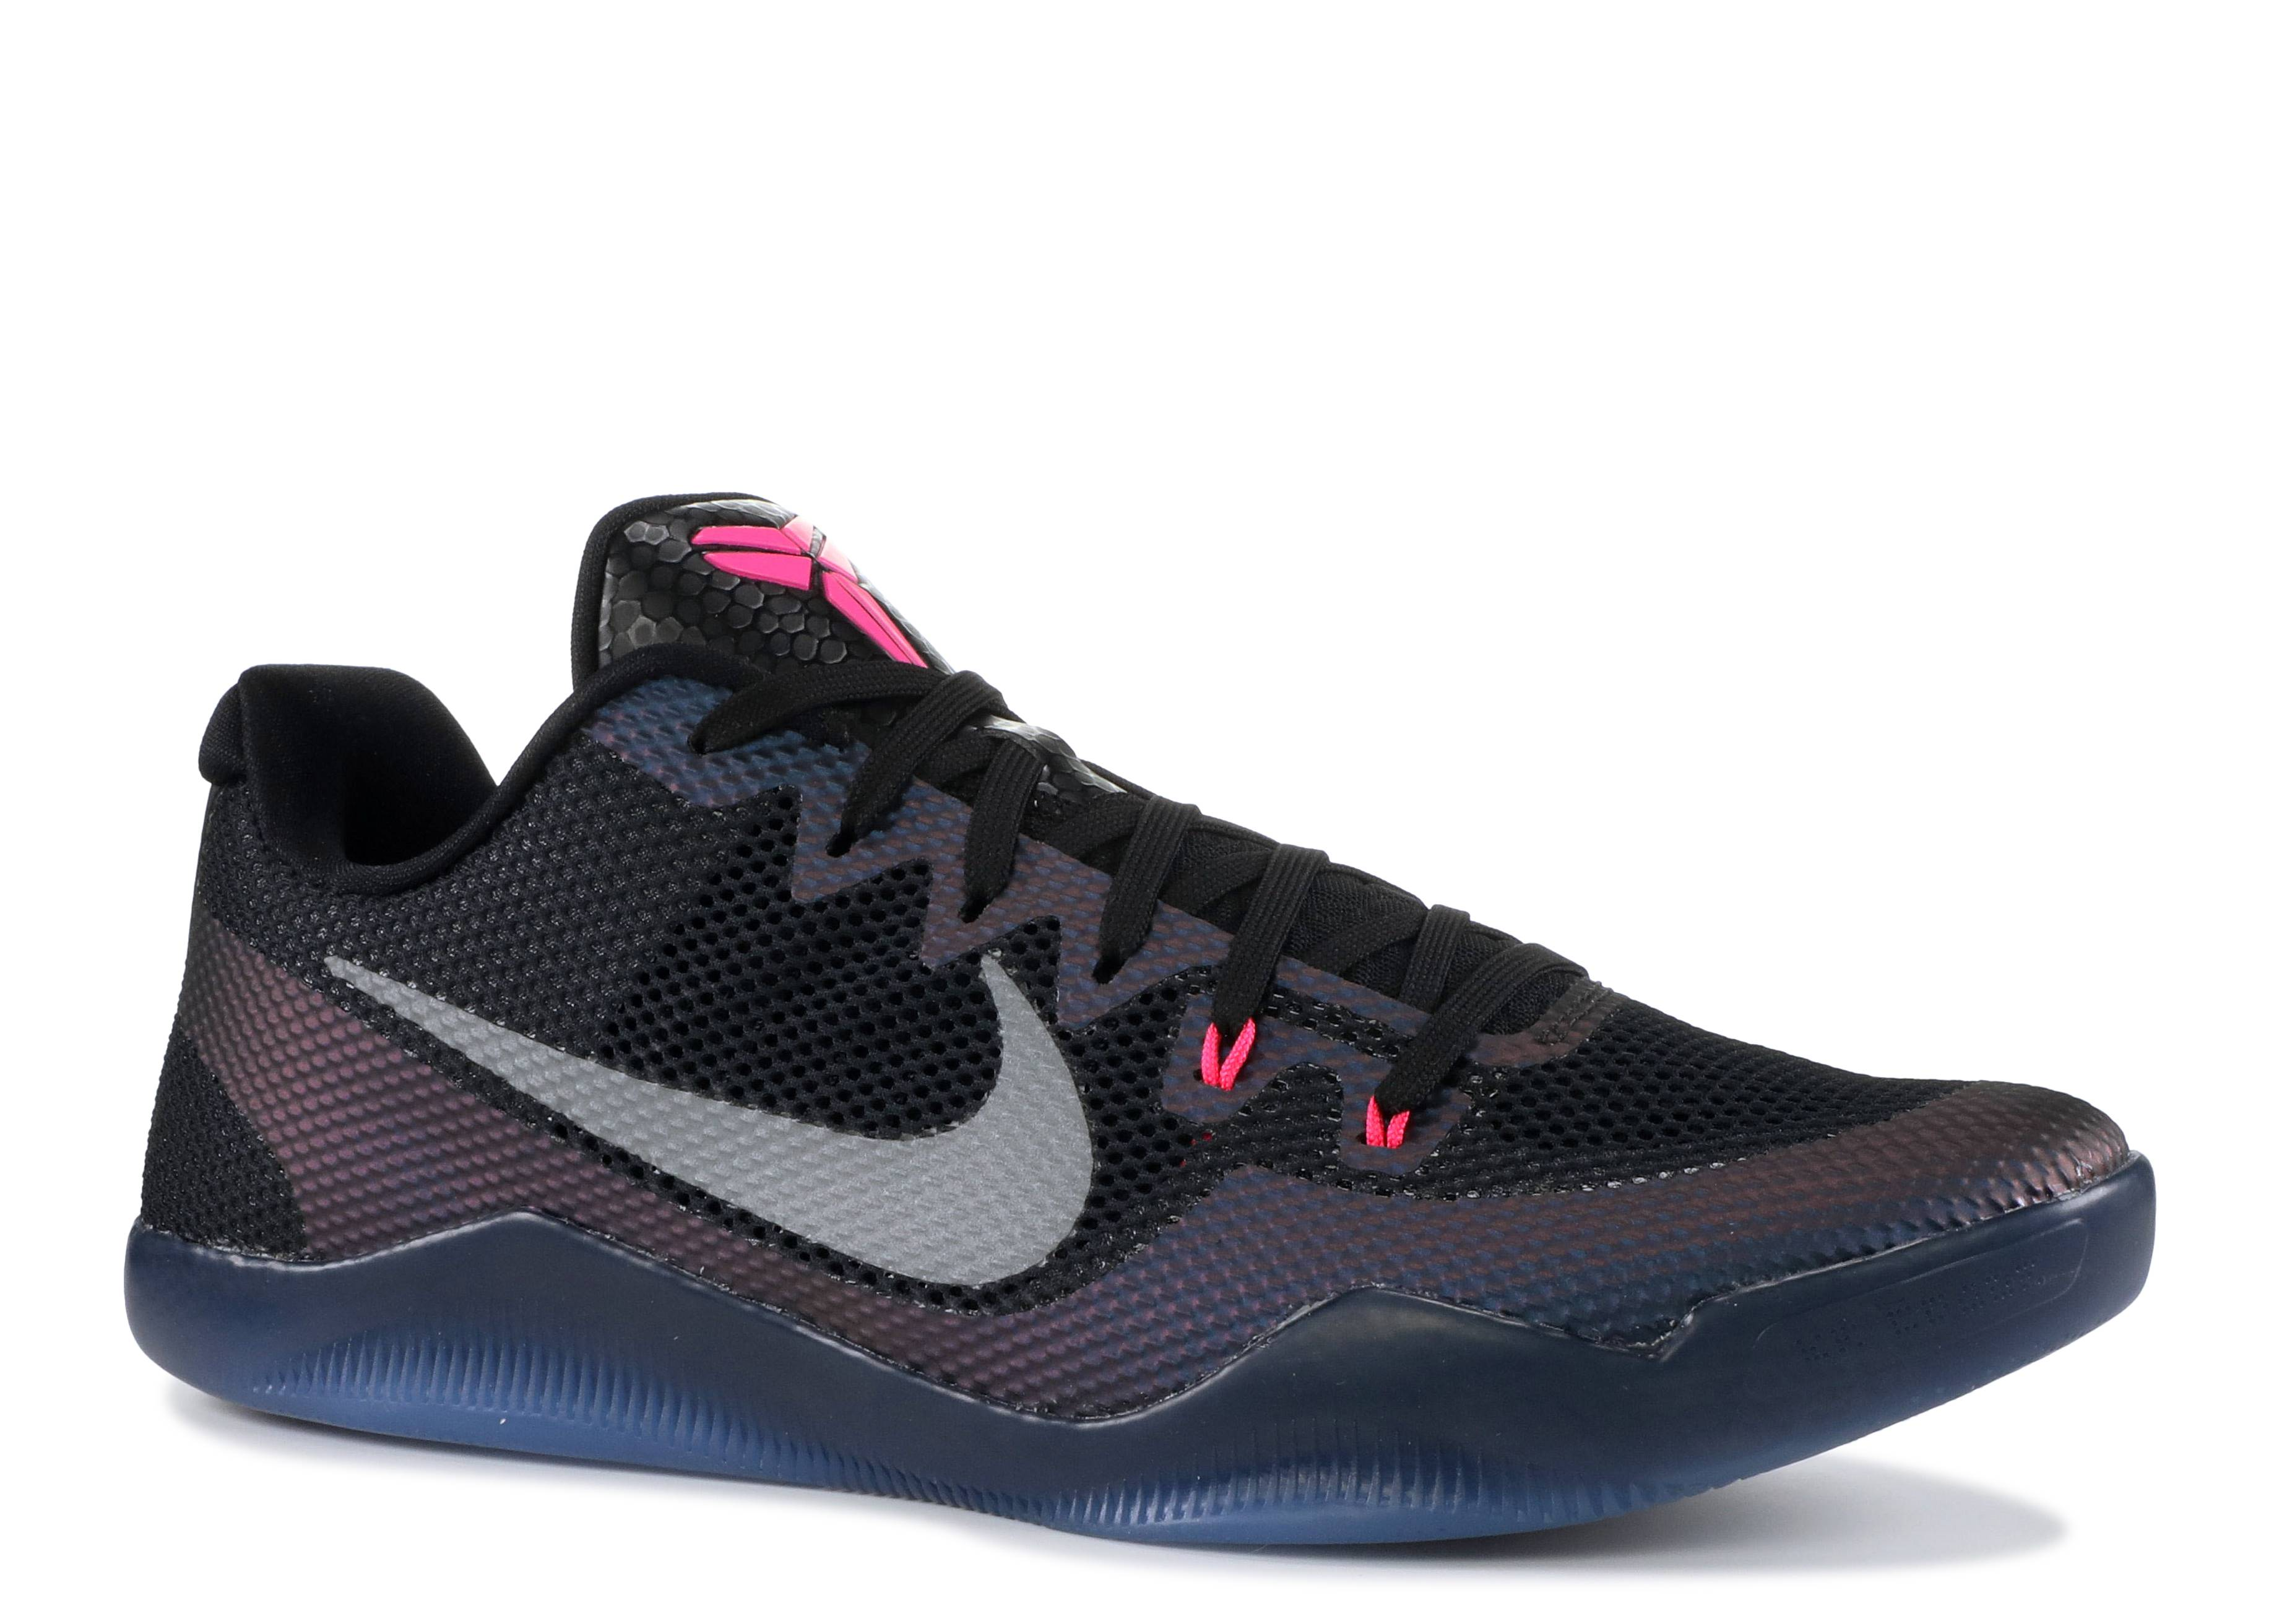 on sale 21fc7 14623 Kobe XI